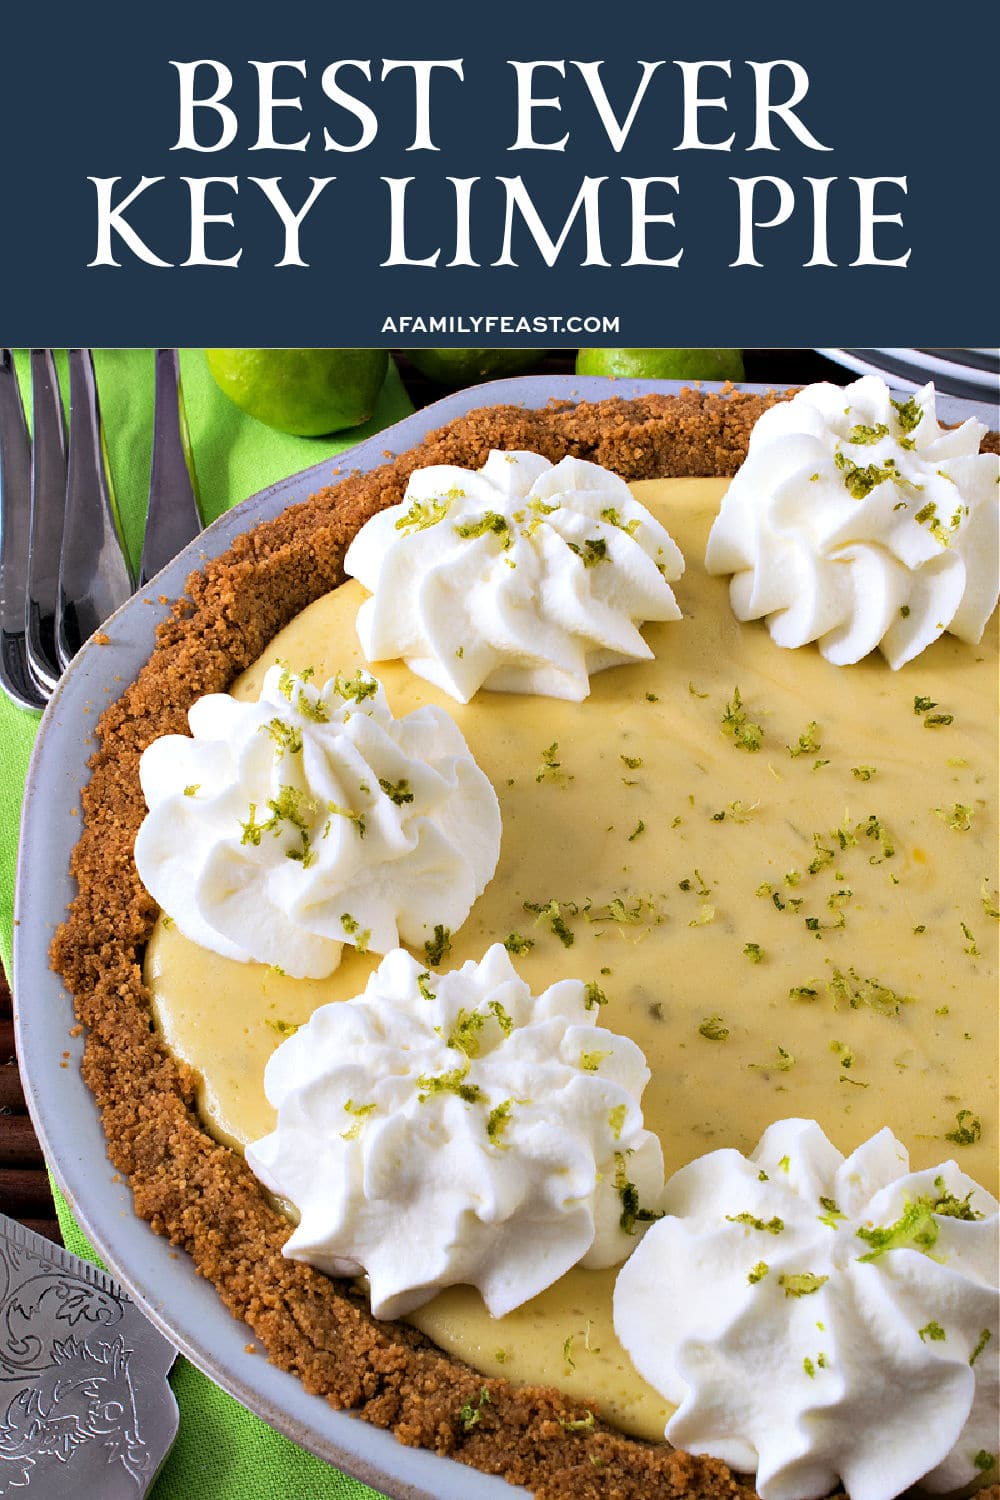 Best Ever Key Lime Pie